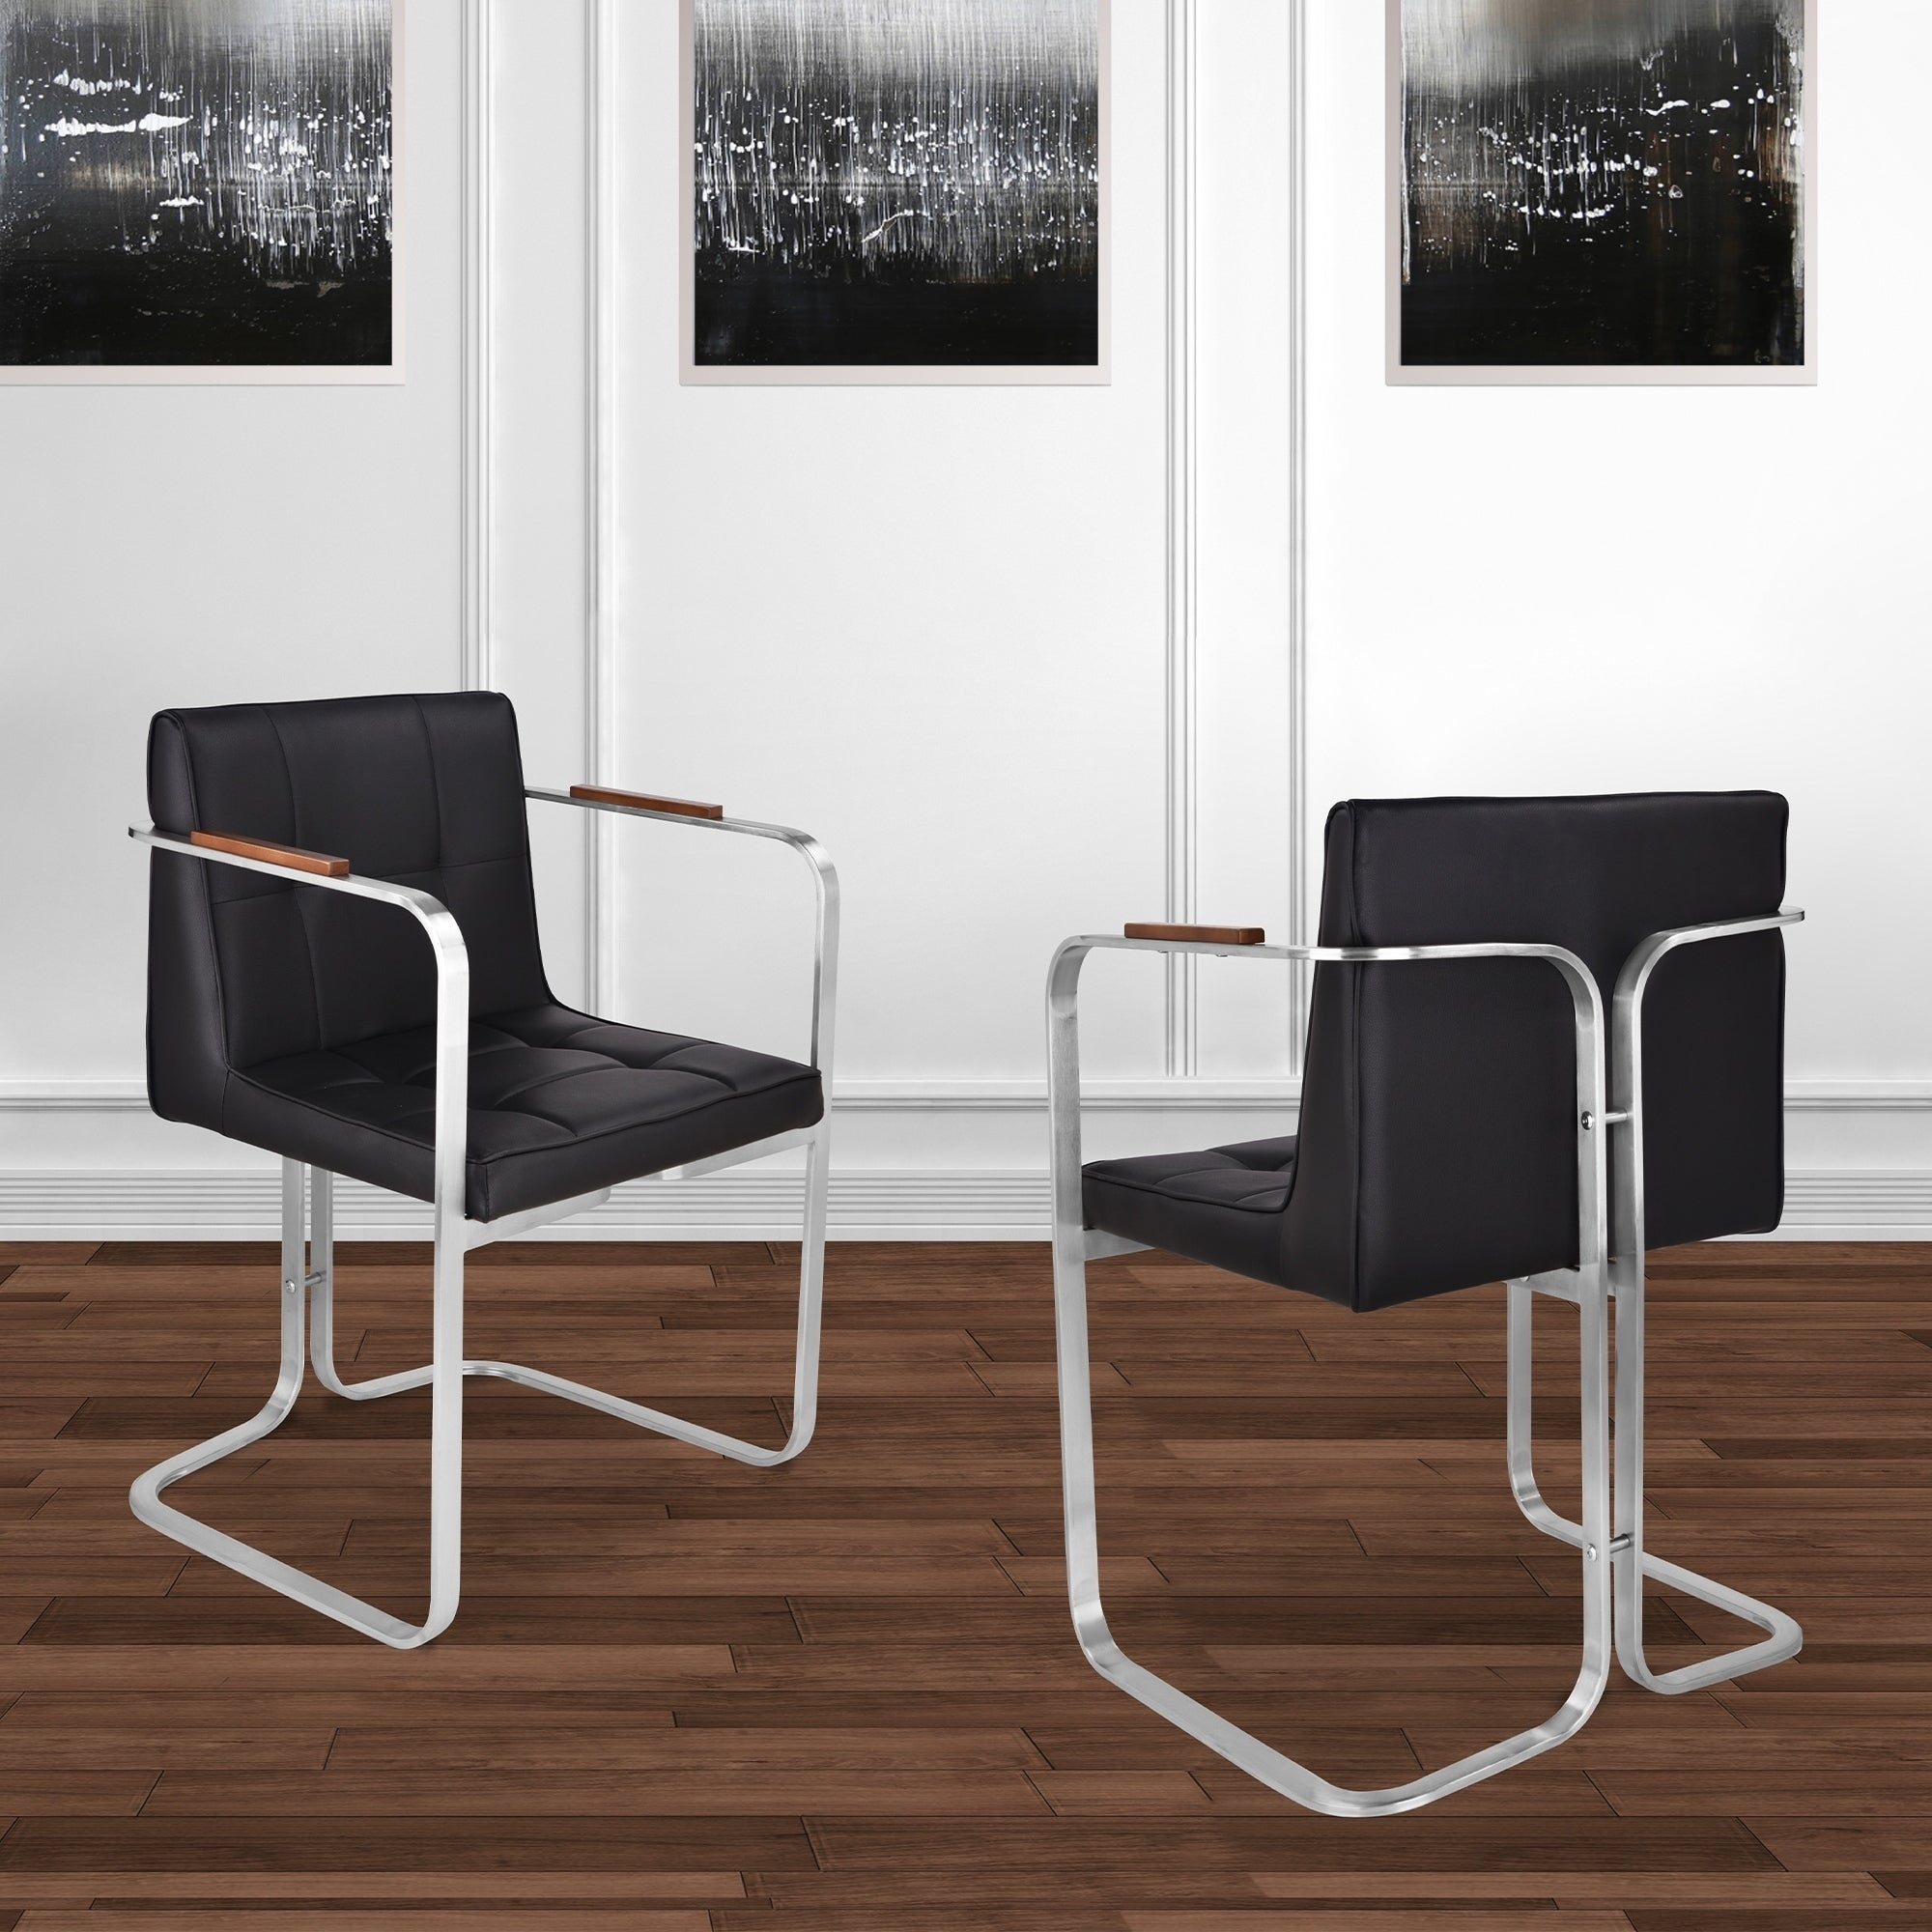 889257e99a Shop Martha Contemporary Dining Chair in Brushed Stainless Steel with Black  Faux Leather and Walnut Arms - Set of 2 - On Sale - Free Shipping Today ...